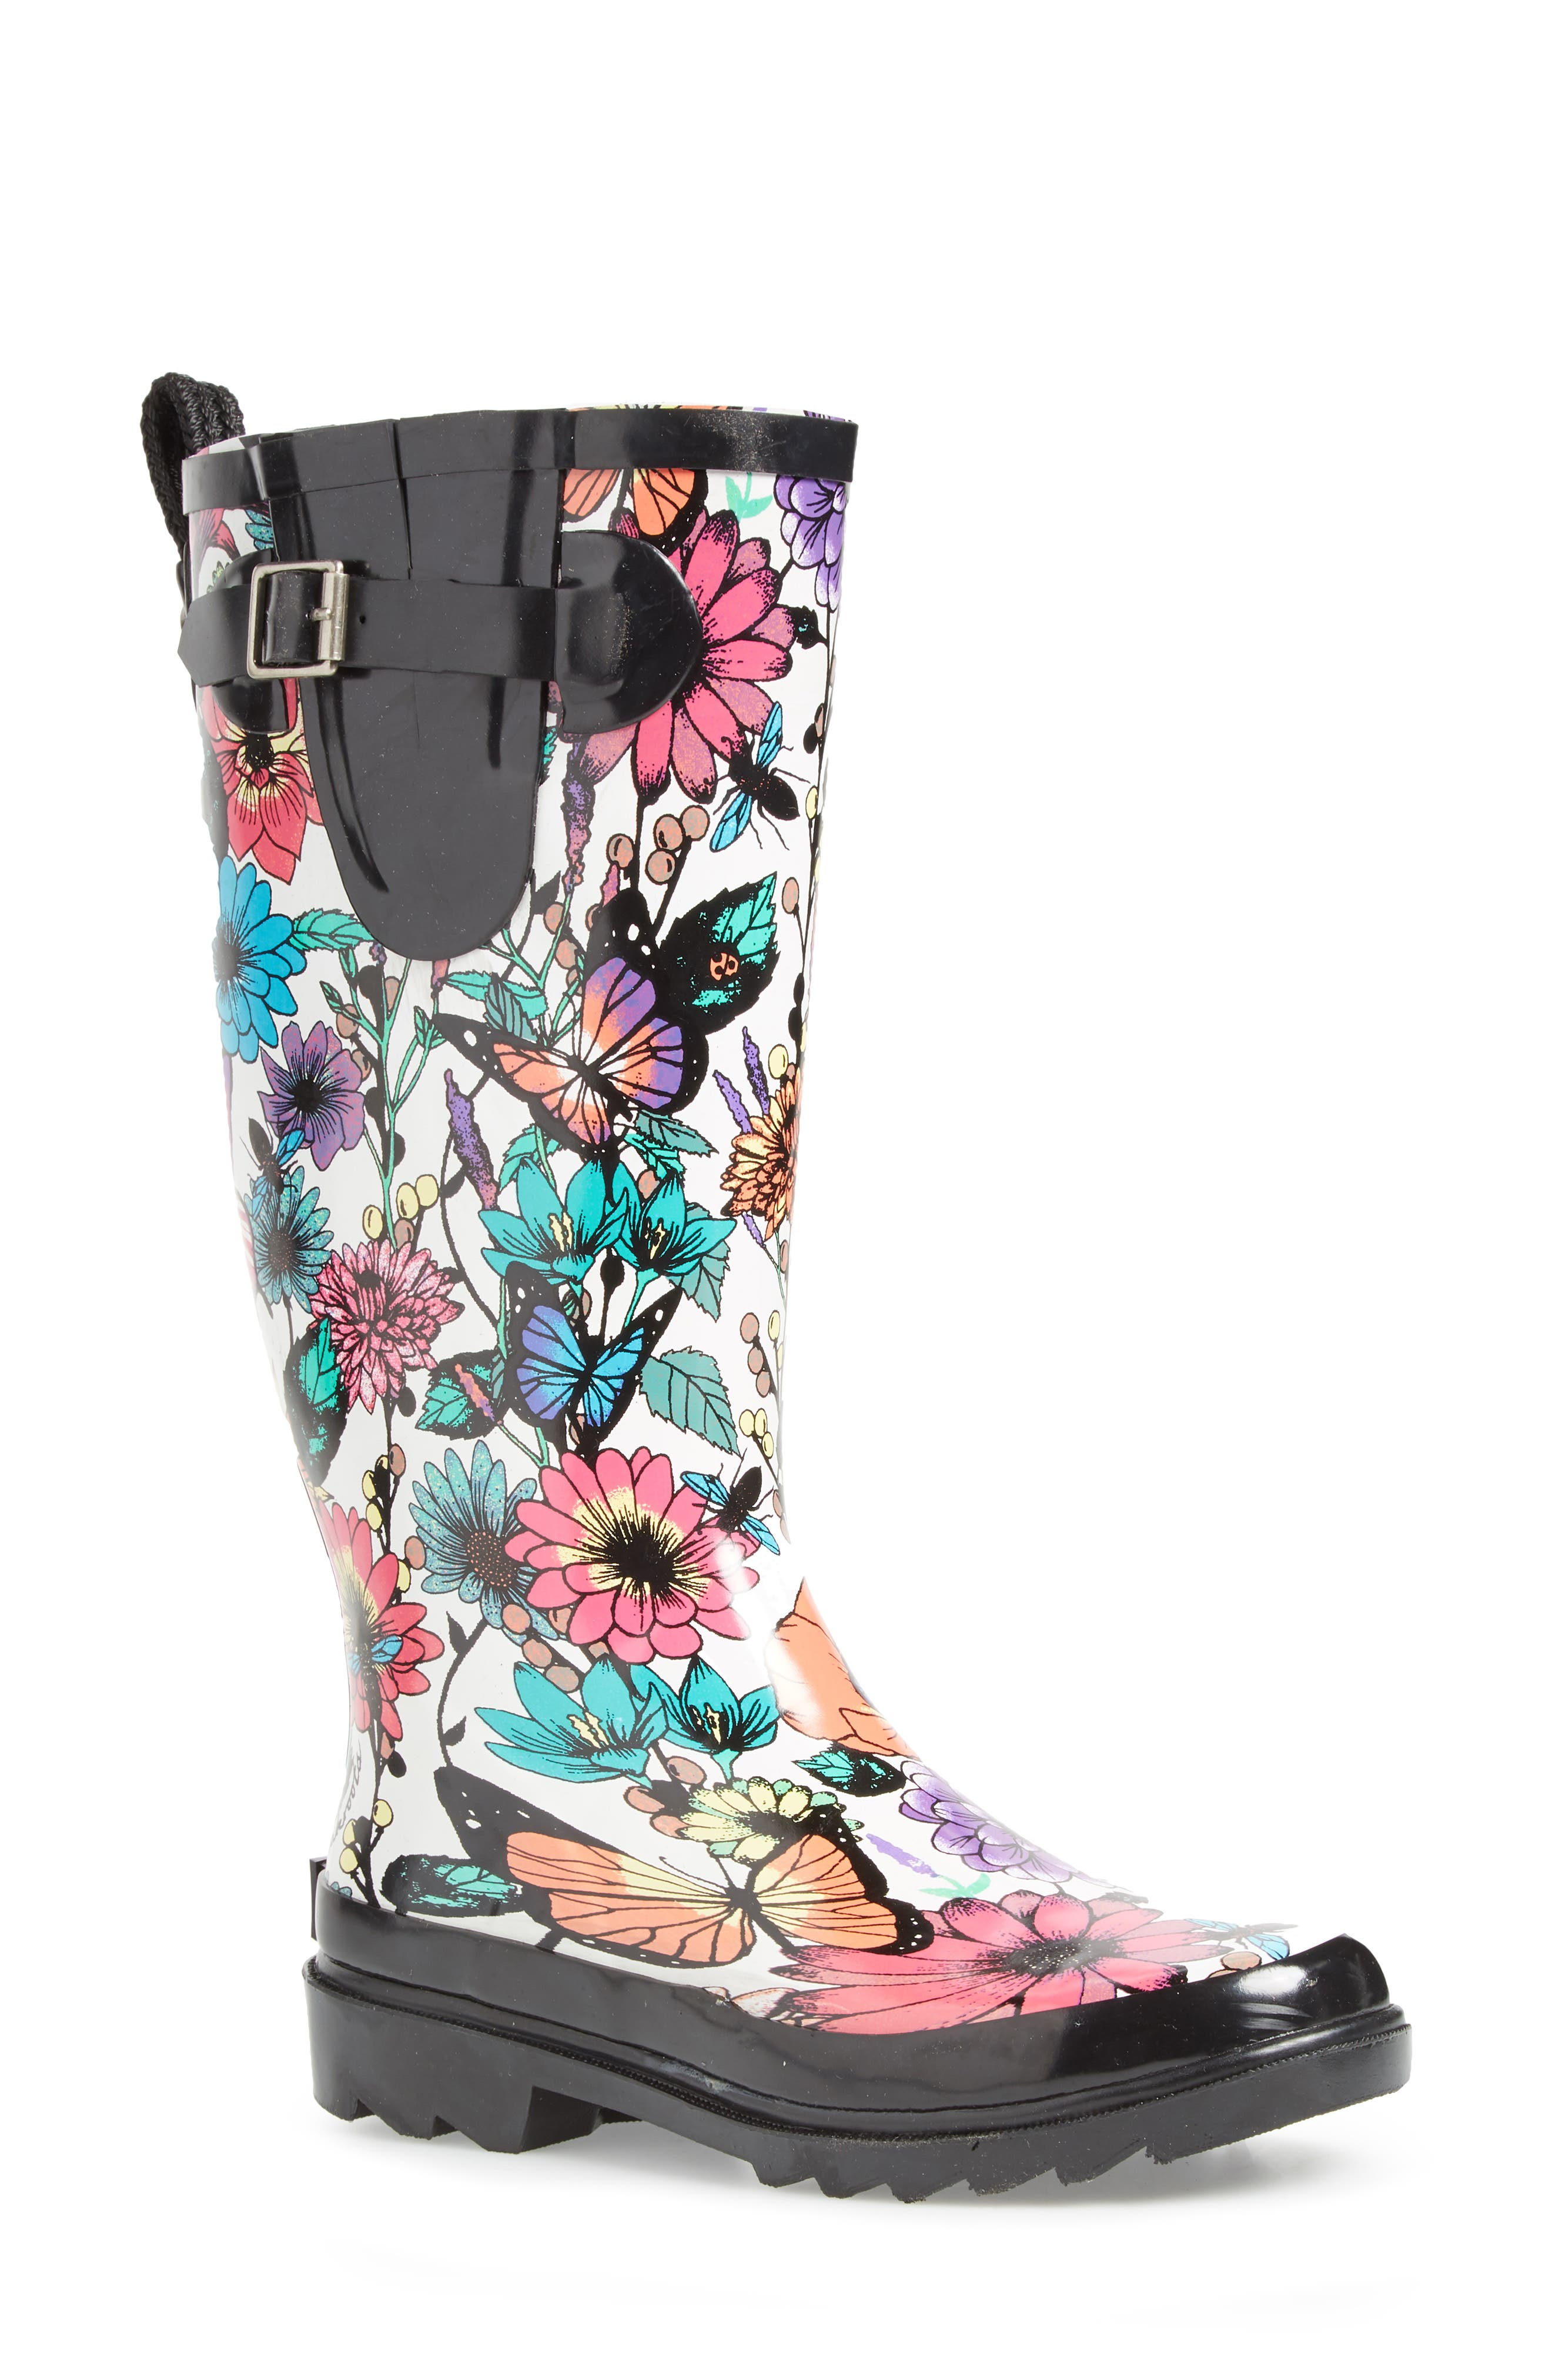 Sakroots 'Rhythm' Waterproof Rain Boot ...